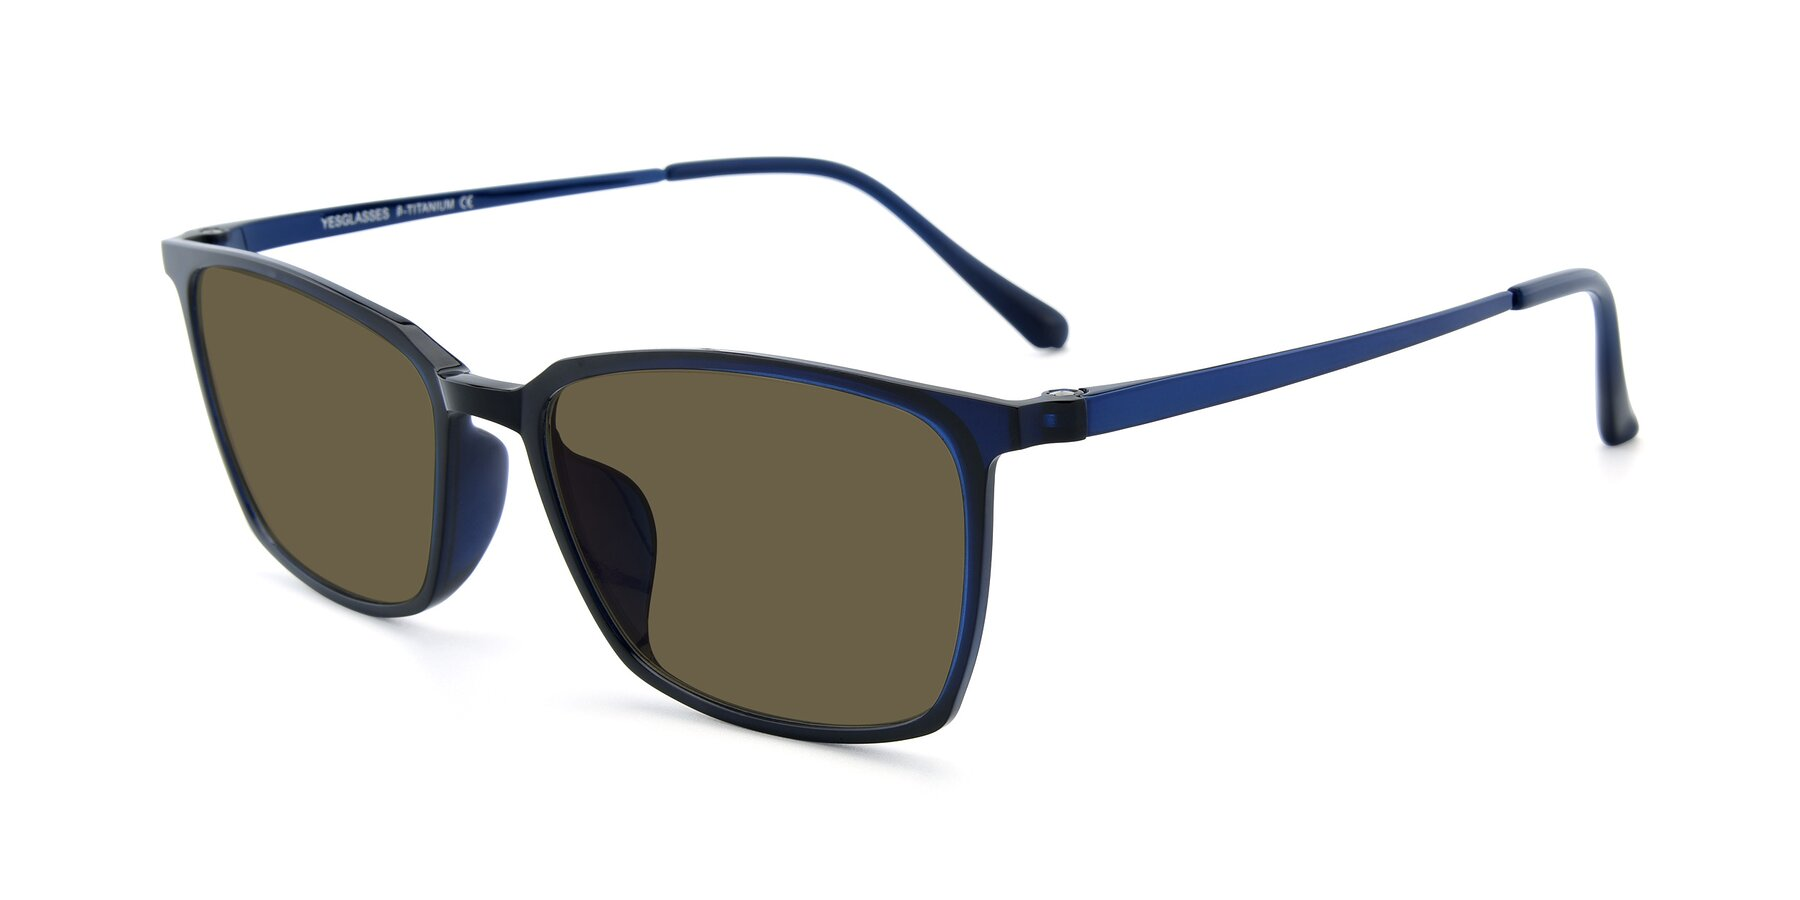 Angle of XC-5009 in Blue with Brown Polarized Lenses